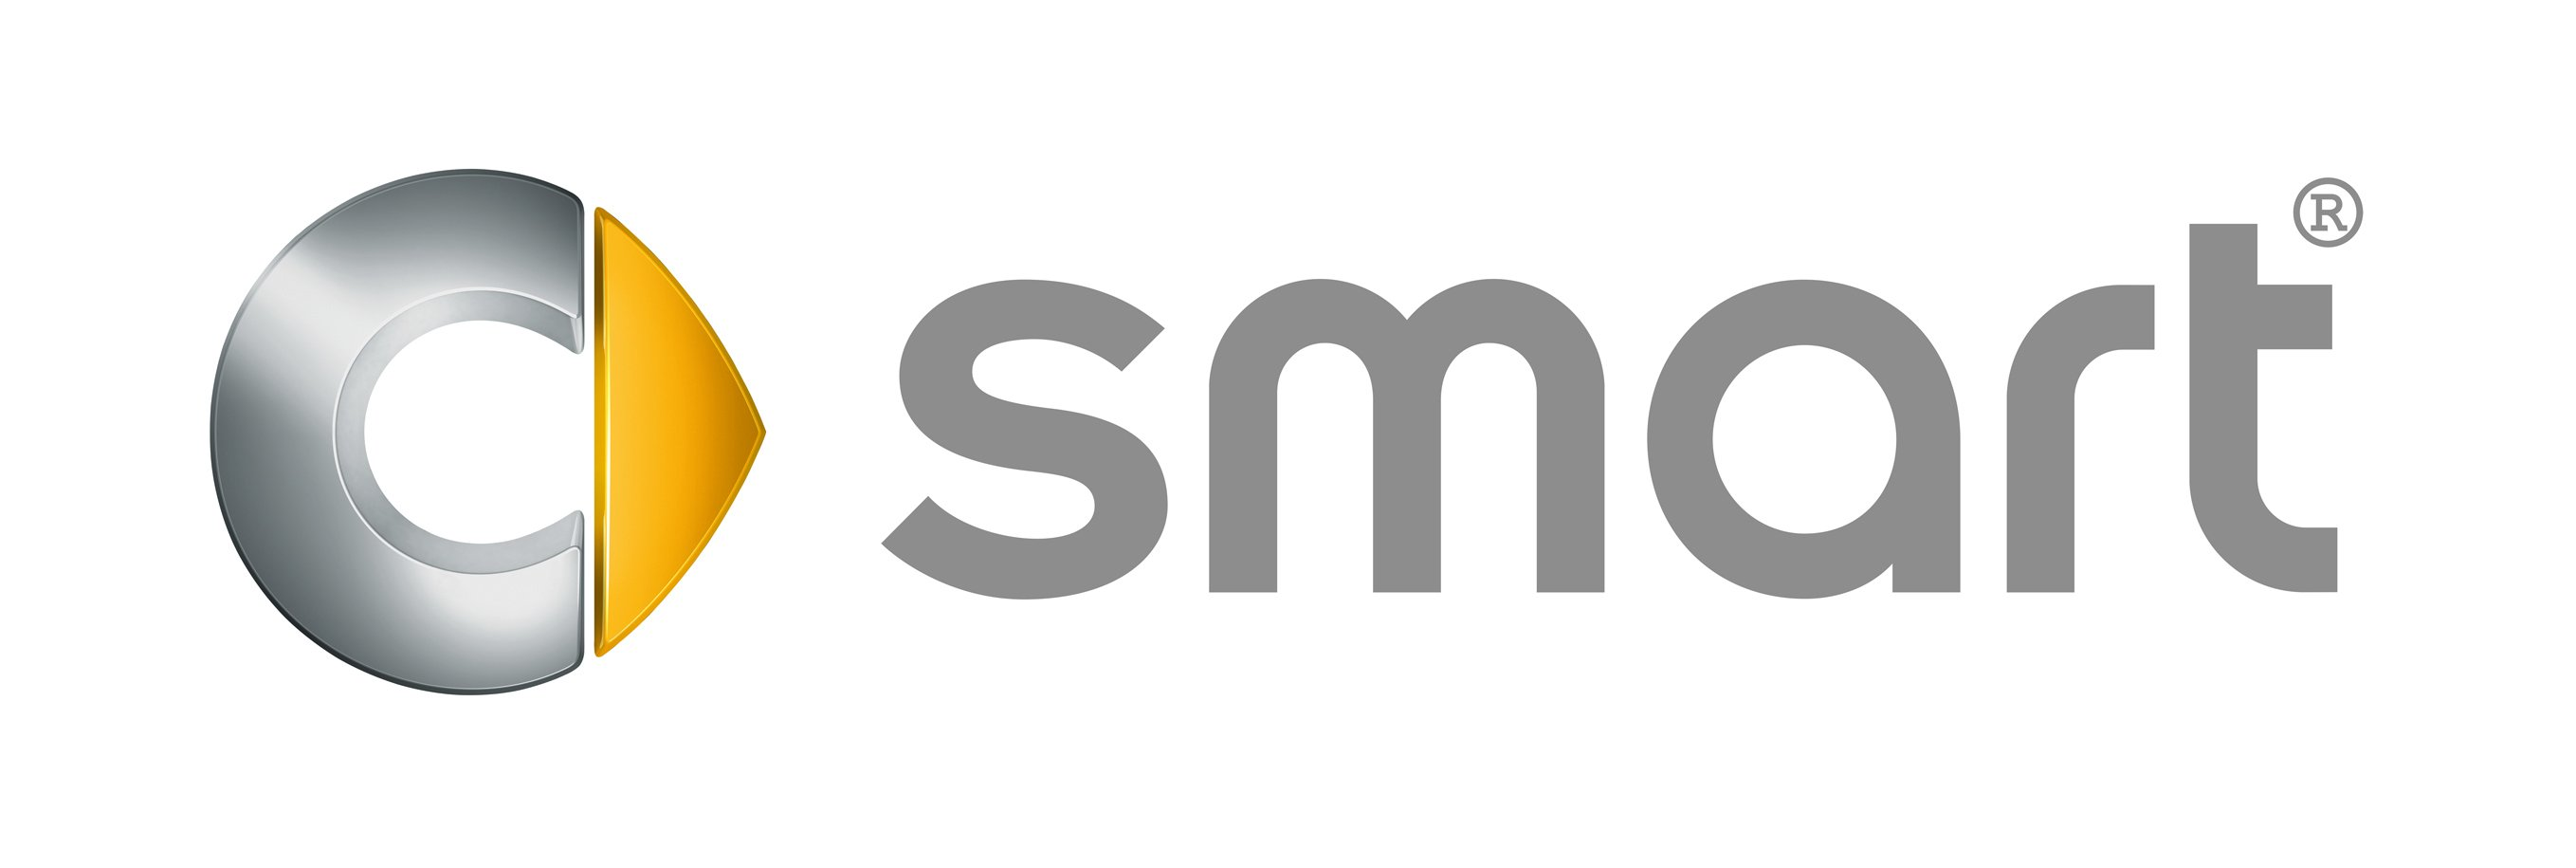 Smart logo Wallpaper